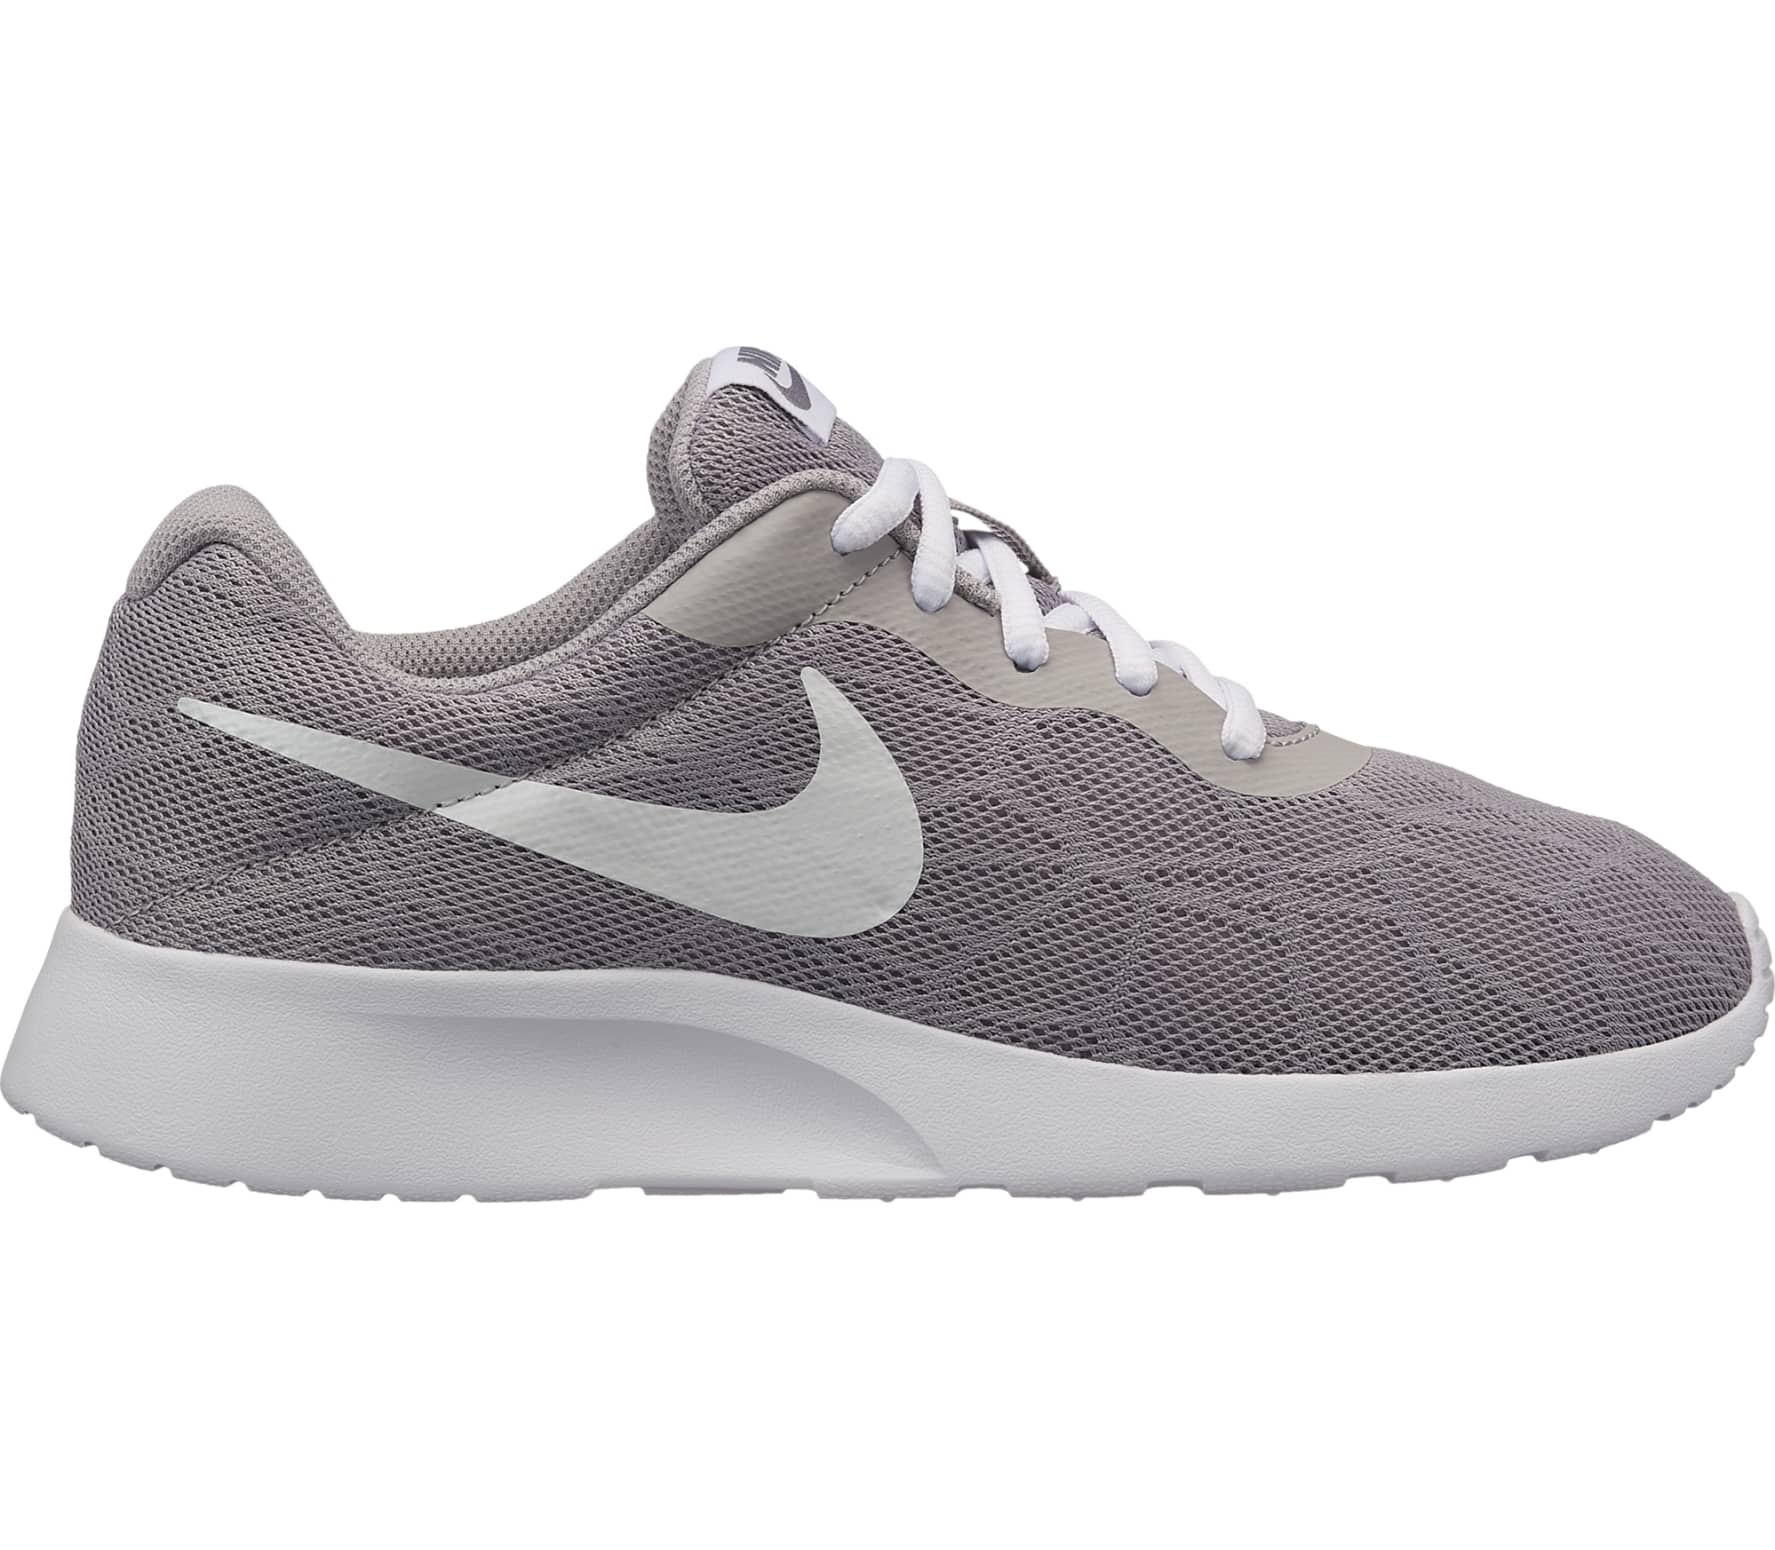 Nike Tanjun SE Women silver - buy it at the Keller Sports online shop